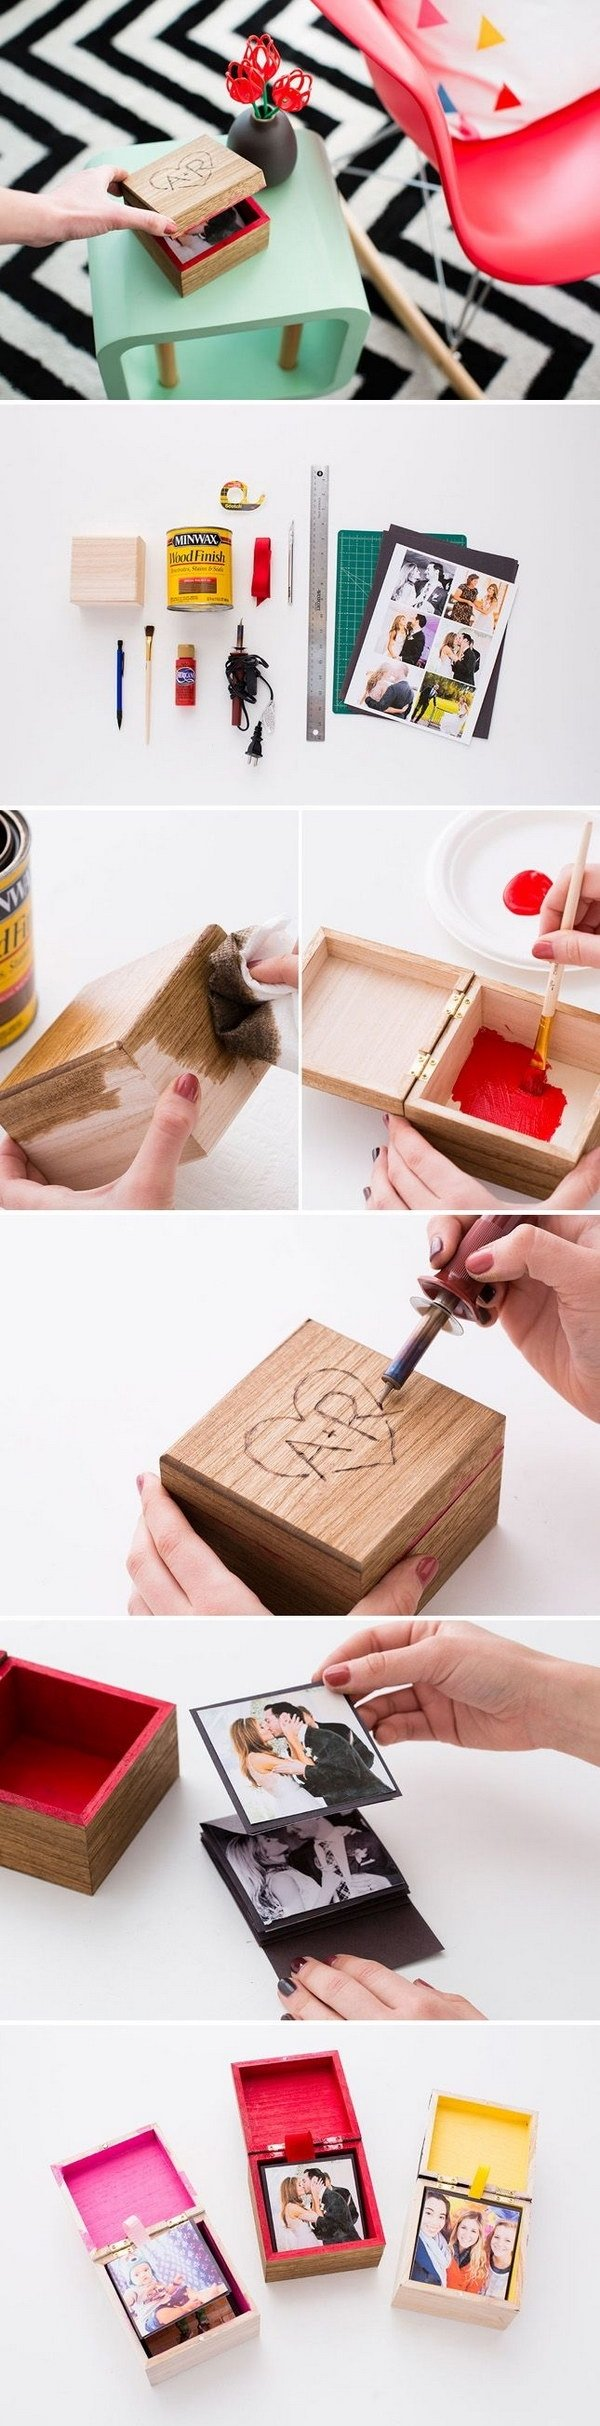 10 Nice Diy Gift Ideas For Boyfriend 25 diy gifts for him with lots of tutorials 2017 11 2020